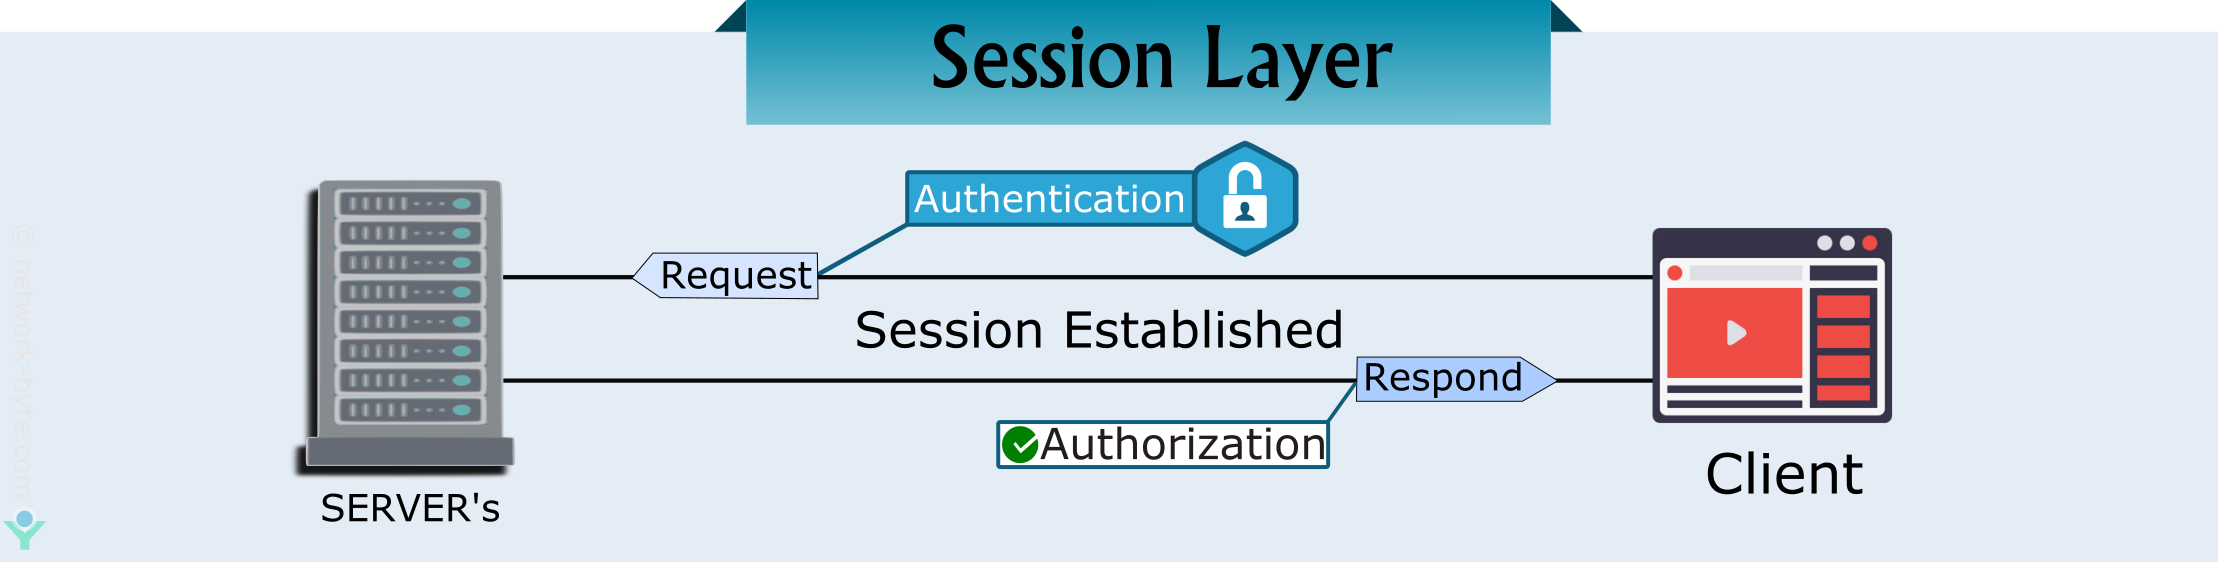 session layer in osi model